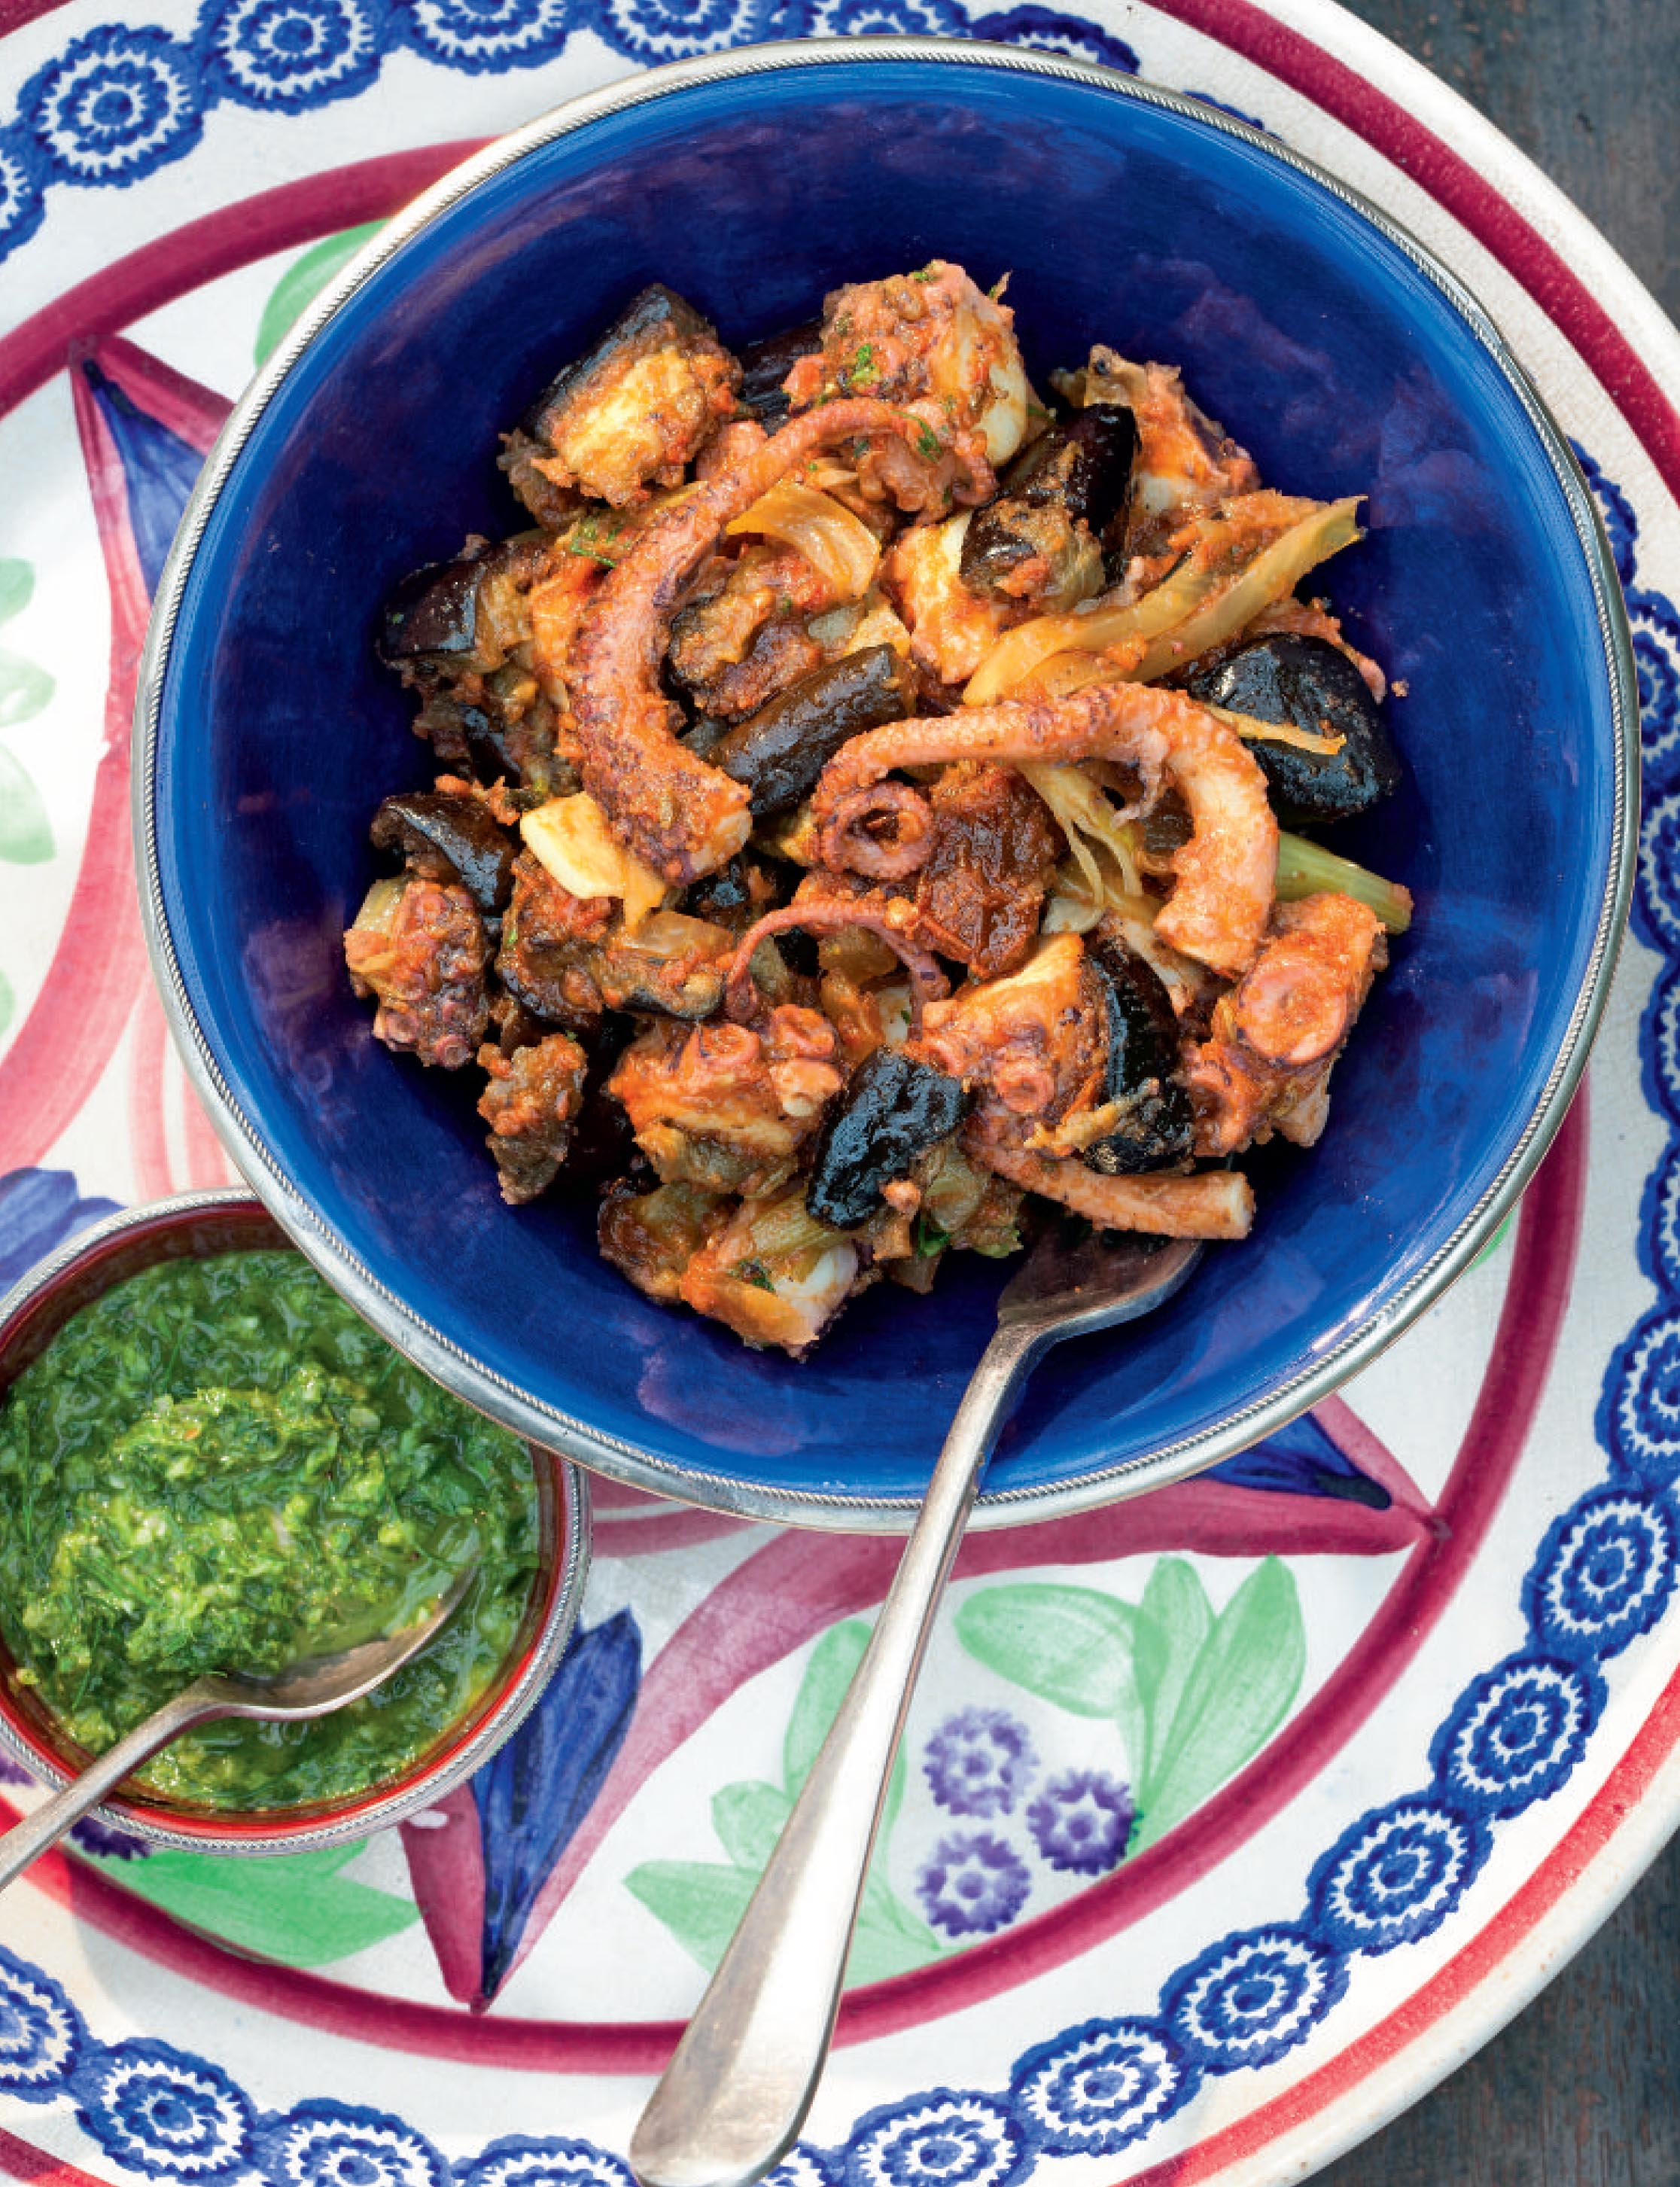 Greek octopus and aubergine with green sauce